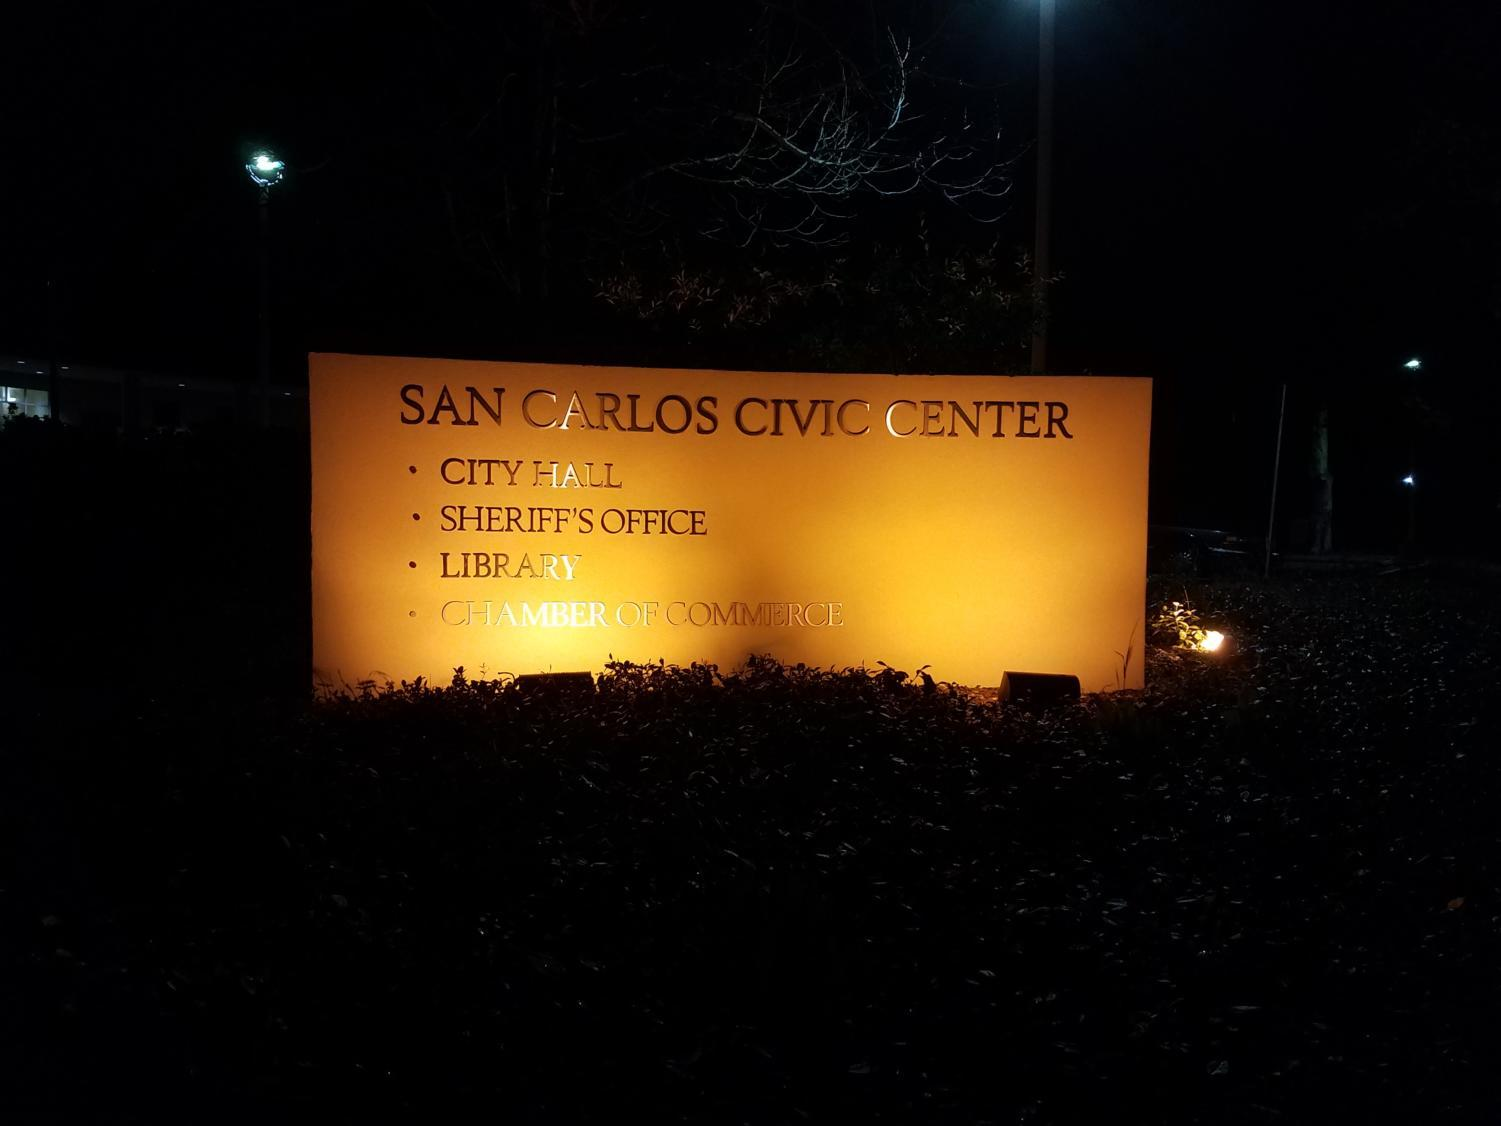 The San Carlos Sheriff's Office is located in the San Carlos Civic Center on the corner of Elm and Cherry Street.